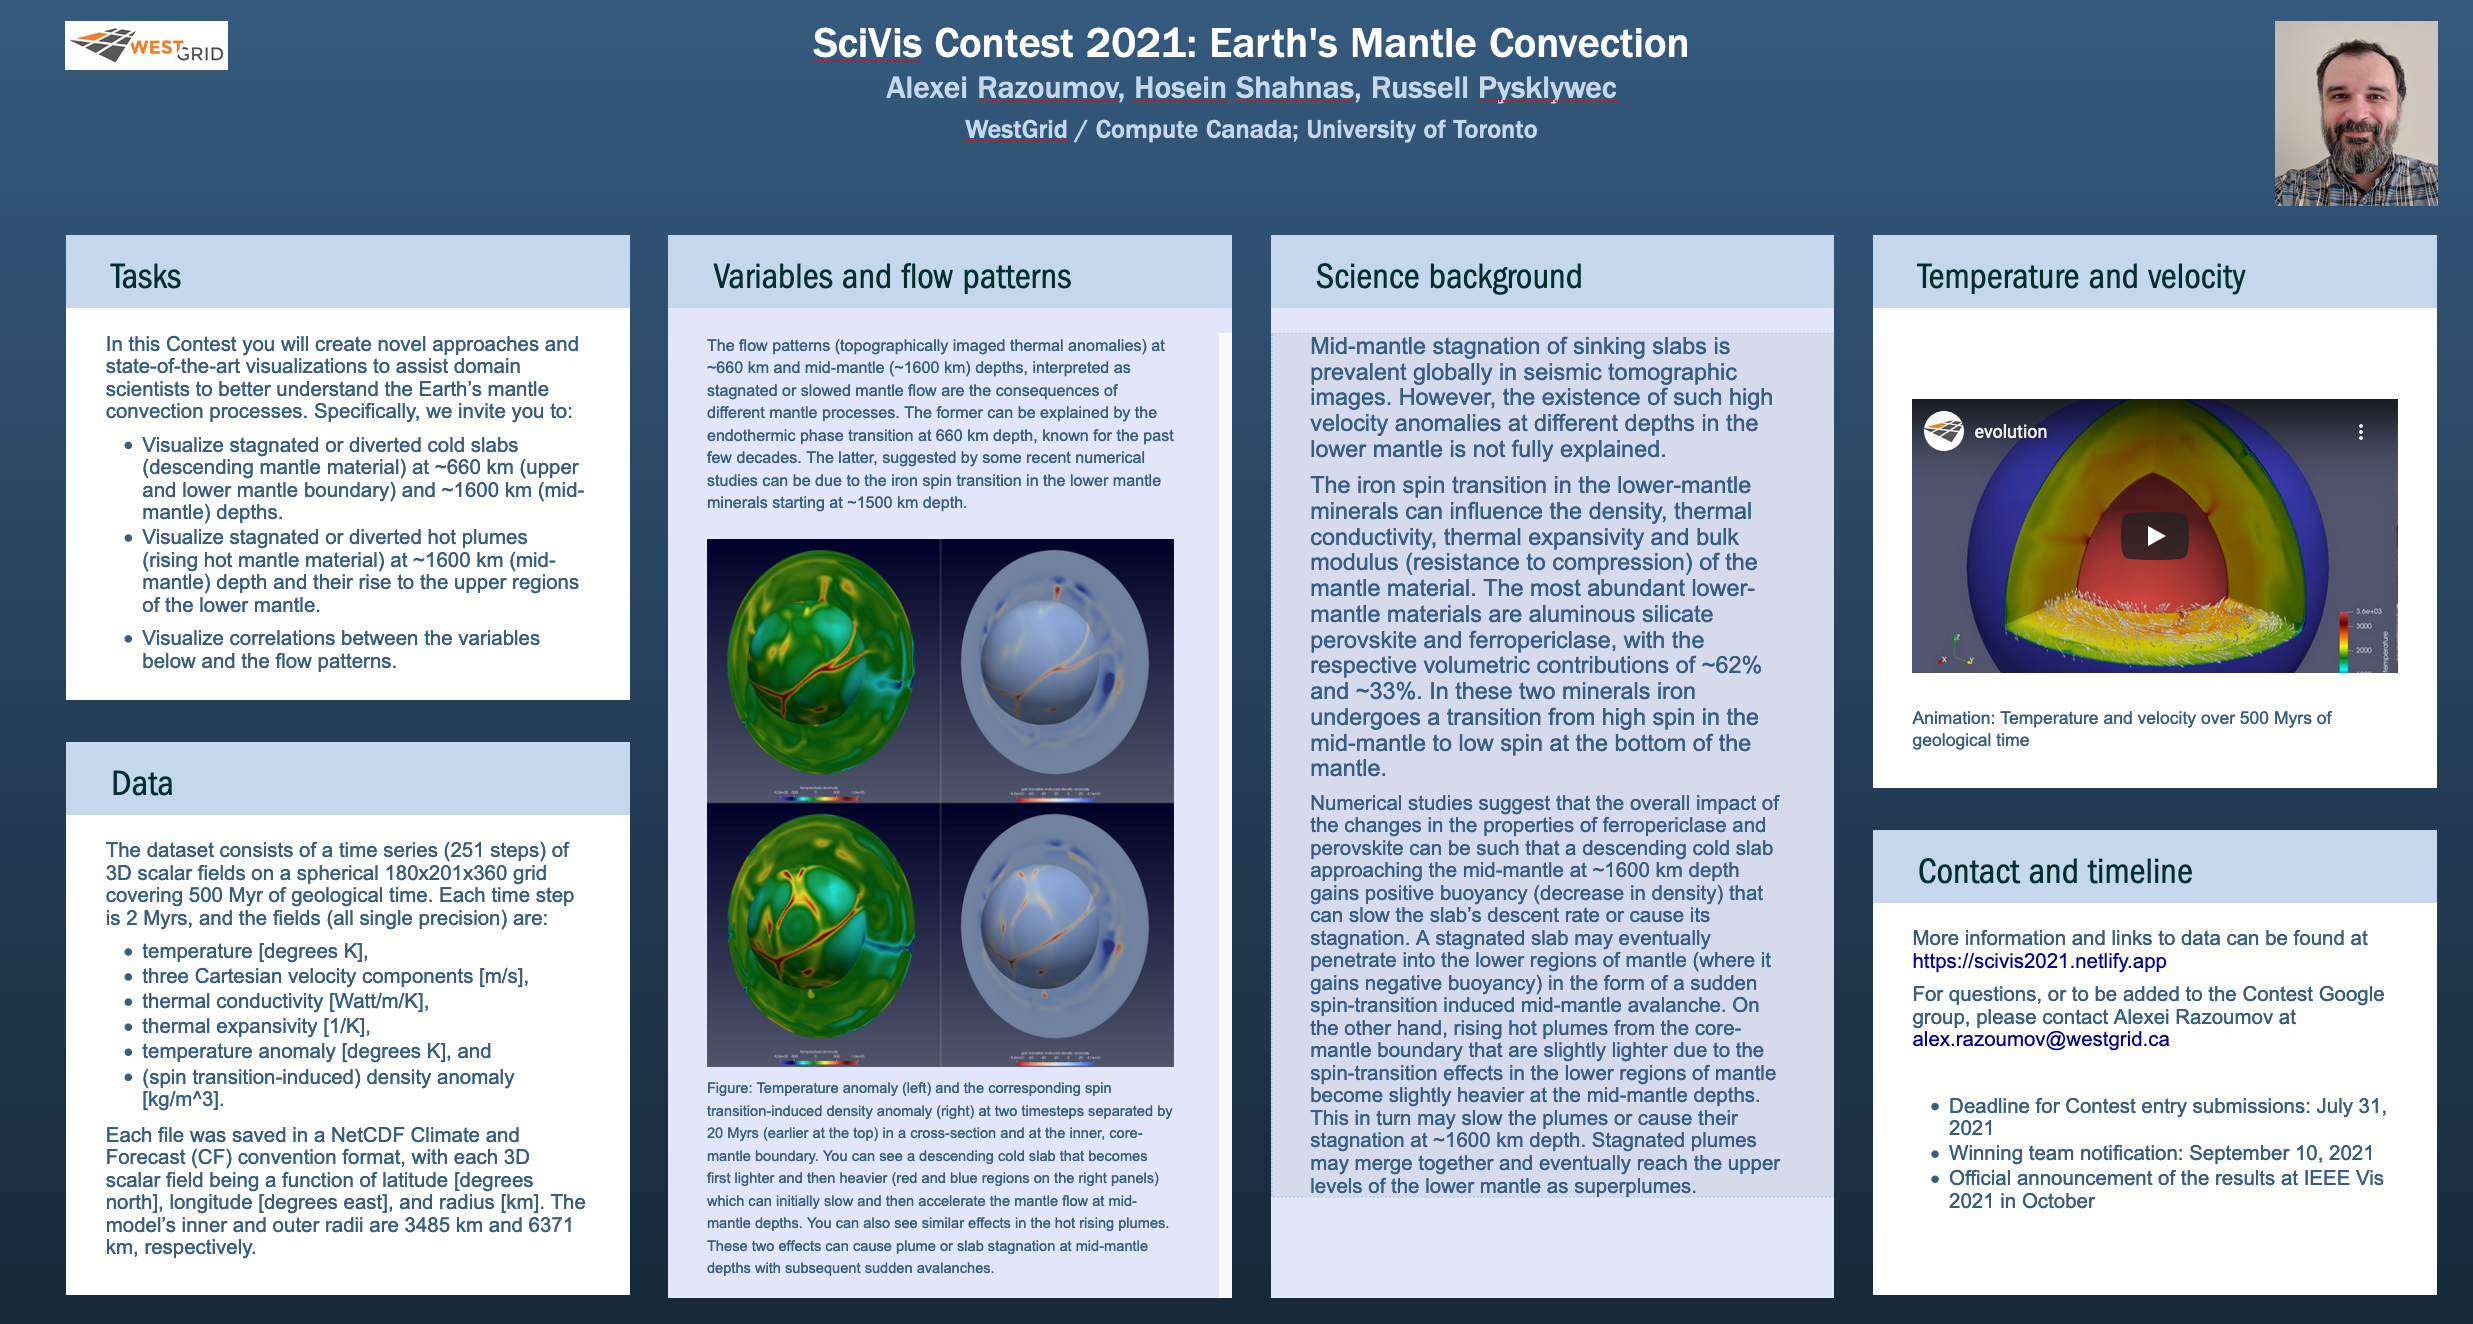 Poster presentation of the SciVis 2021 contest.